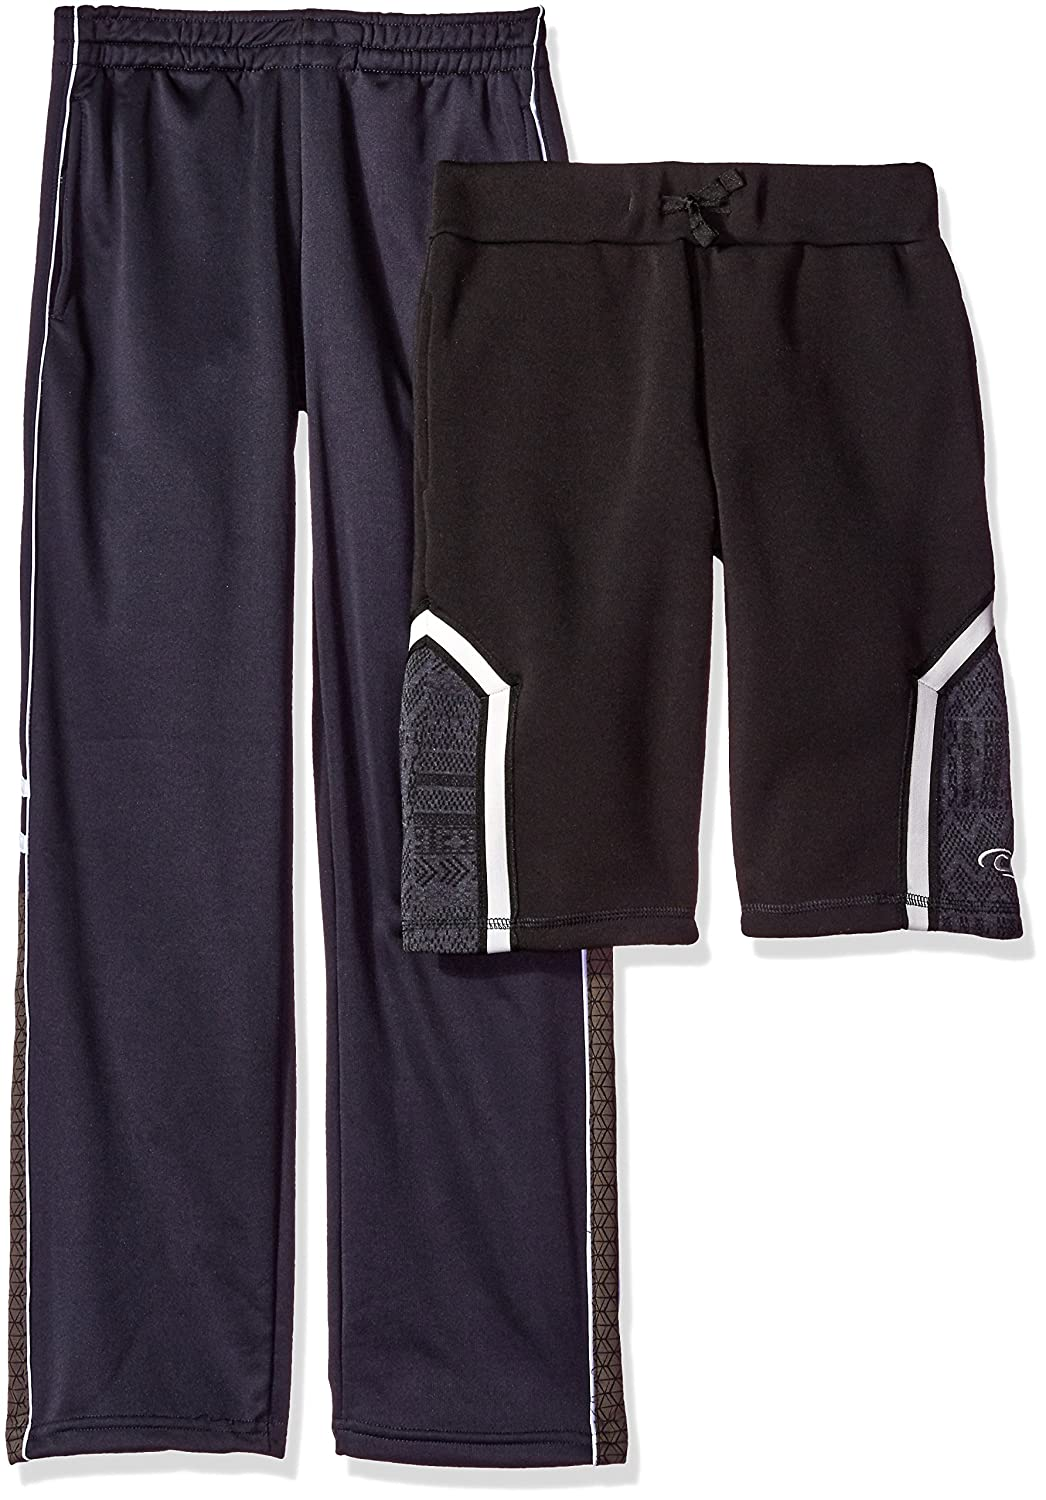 CB Sports Boys Athletic Pant and Sport Short